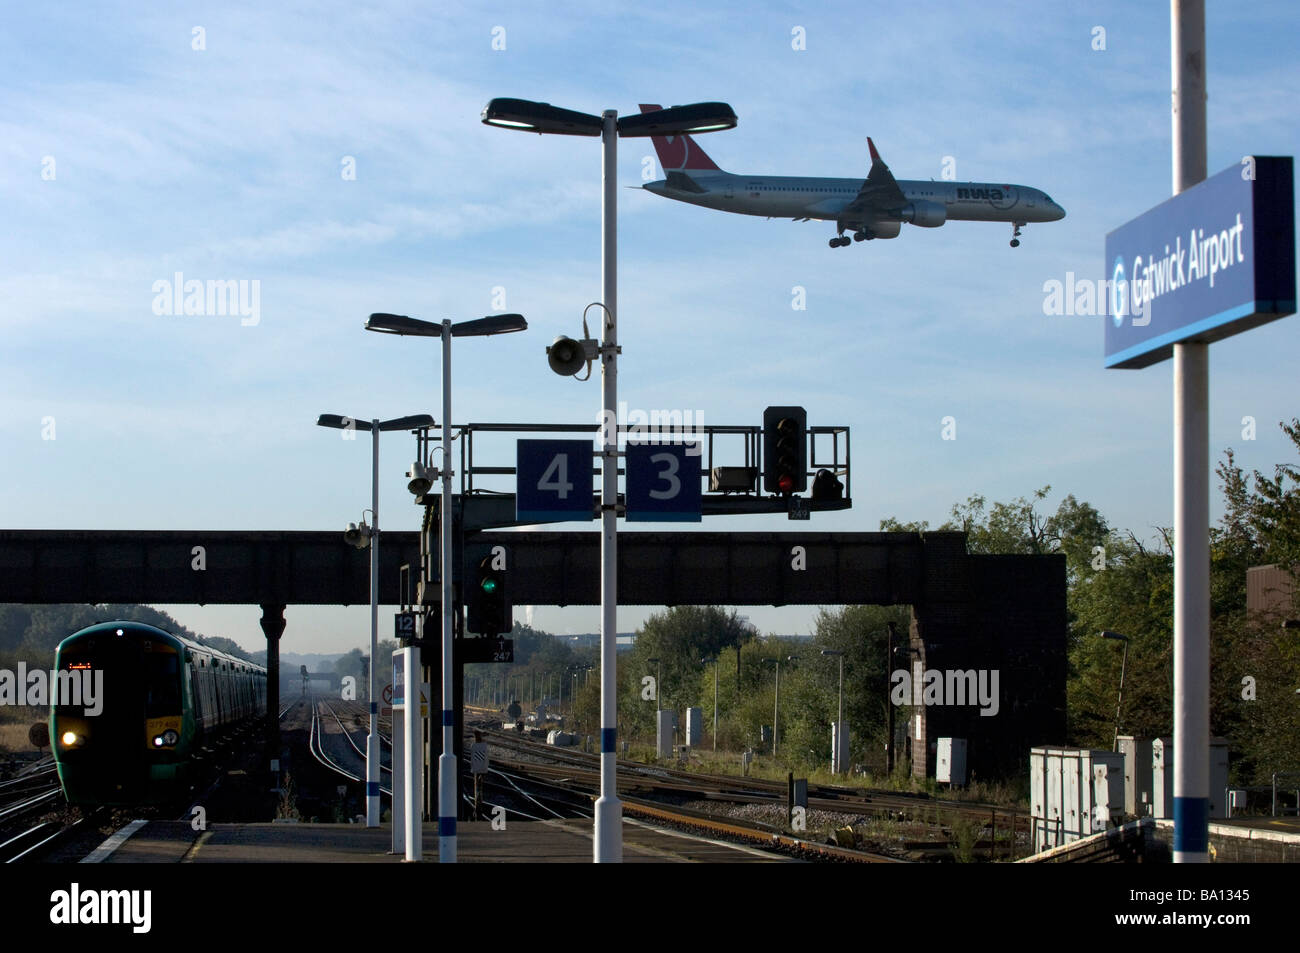 A North West Airways Jet Airplane lands above the railway station at Gatwick Airport as a train arrives - Stock Image